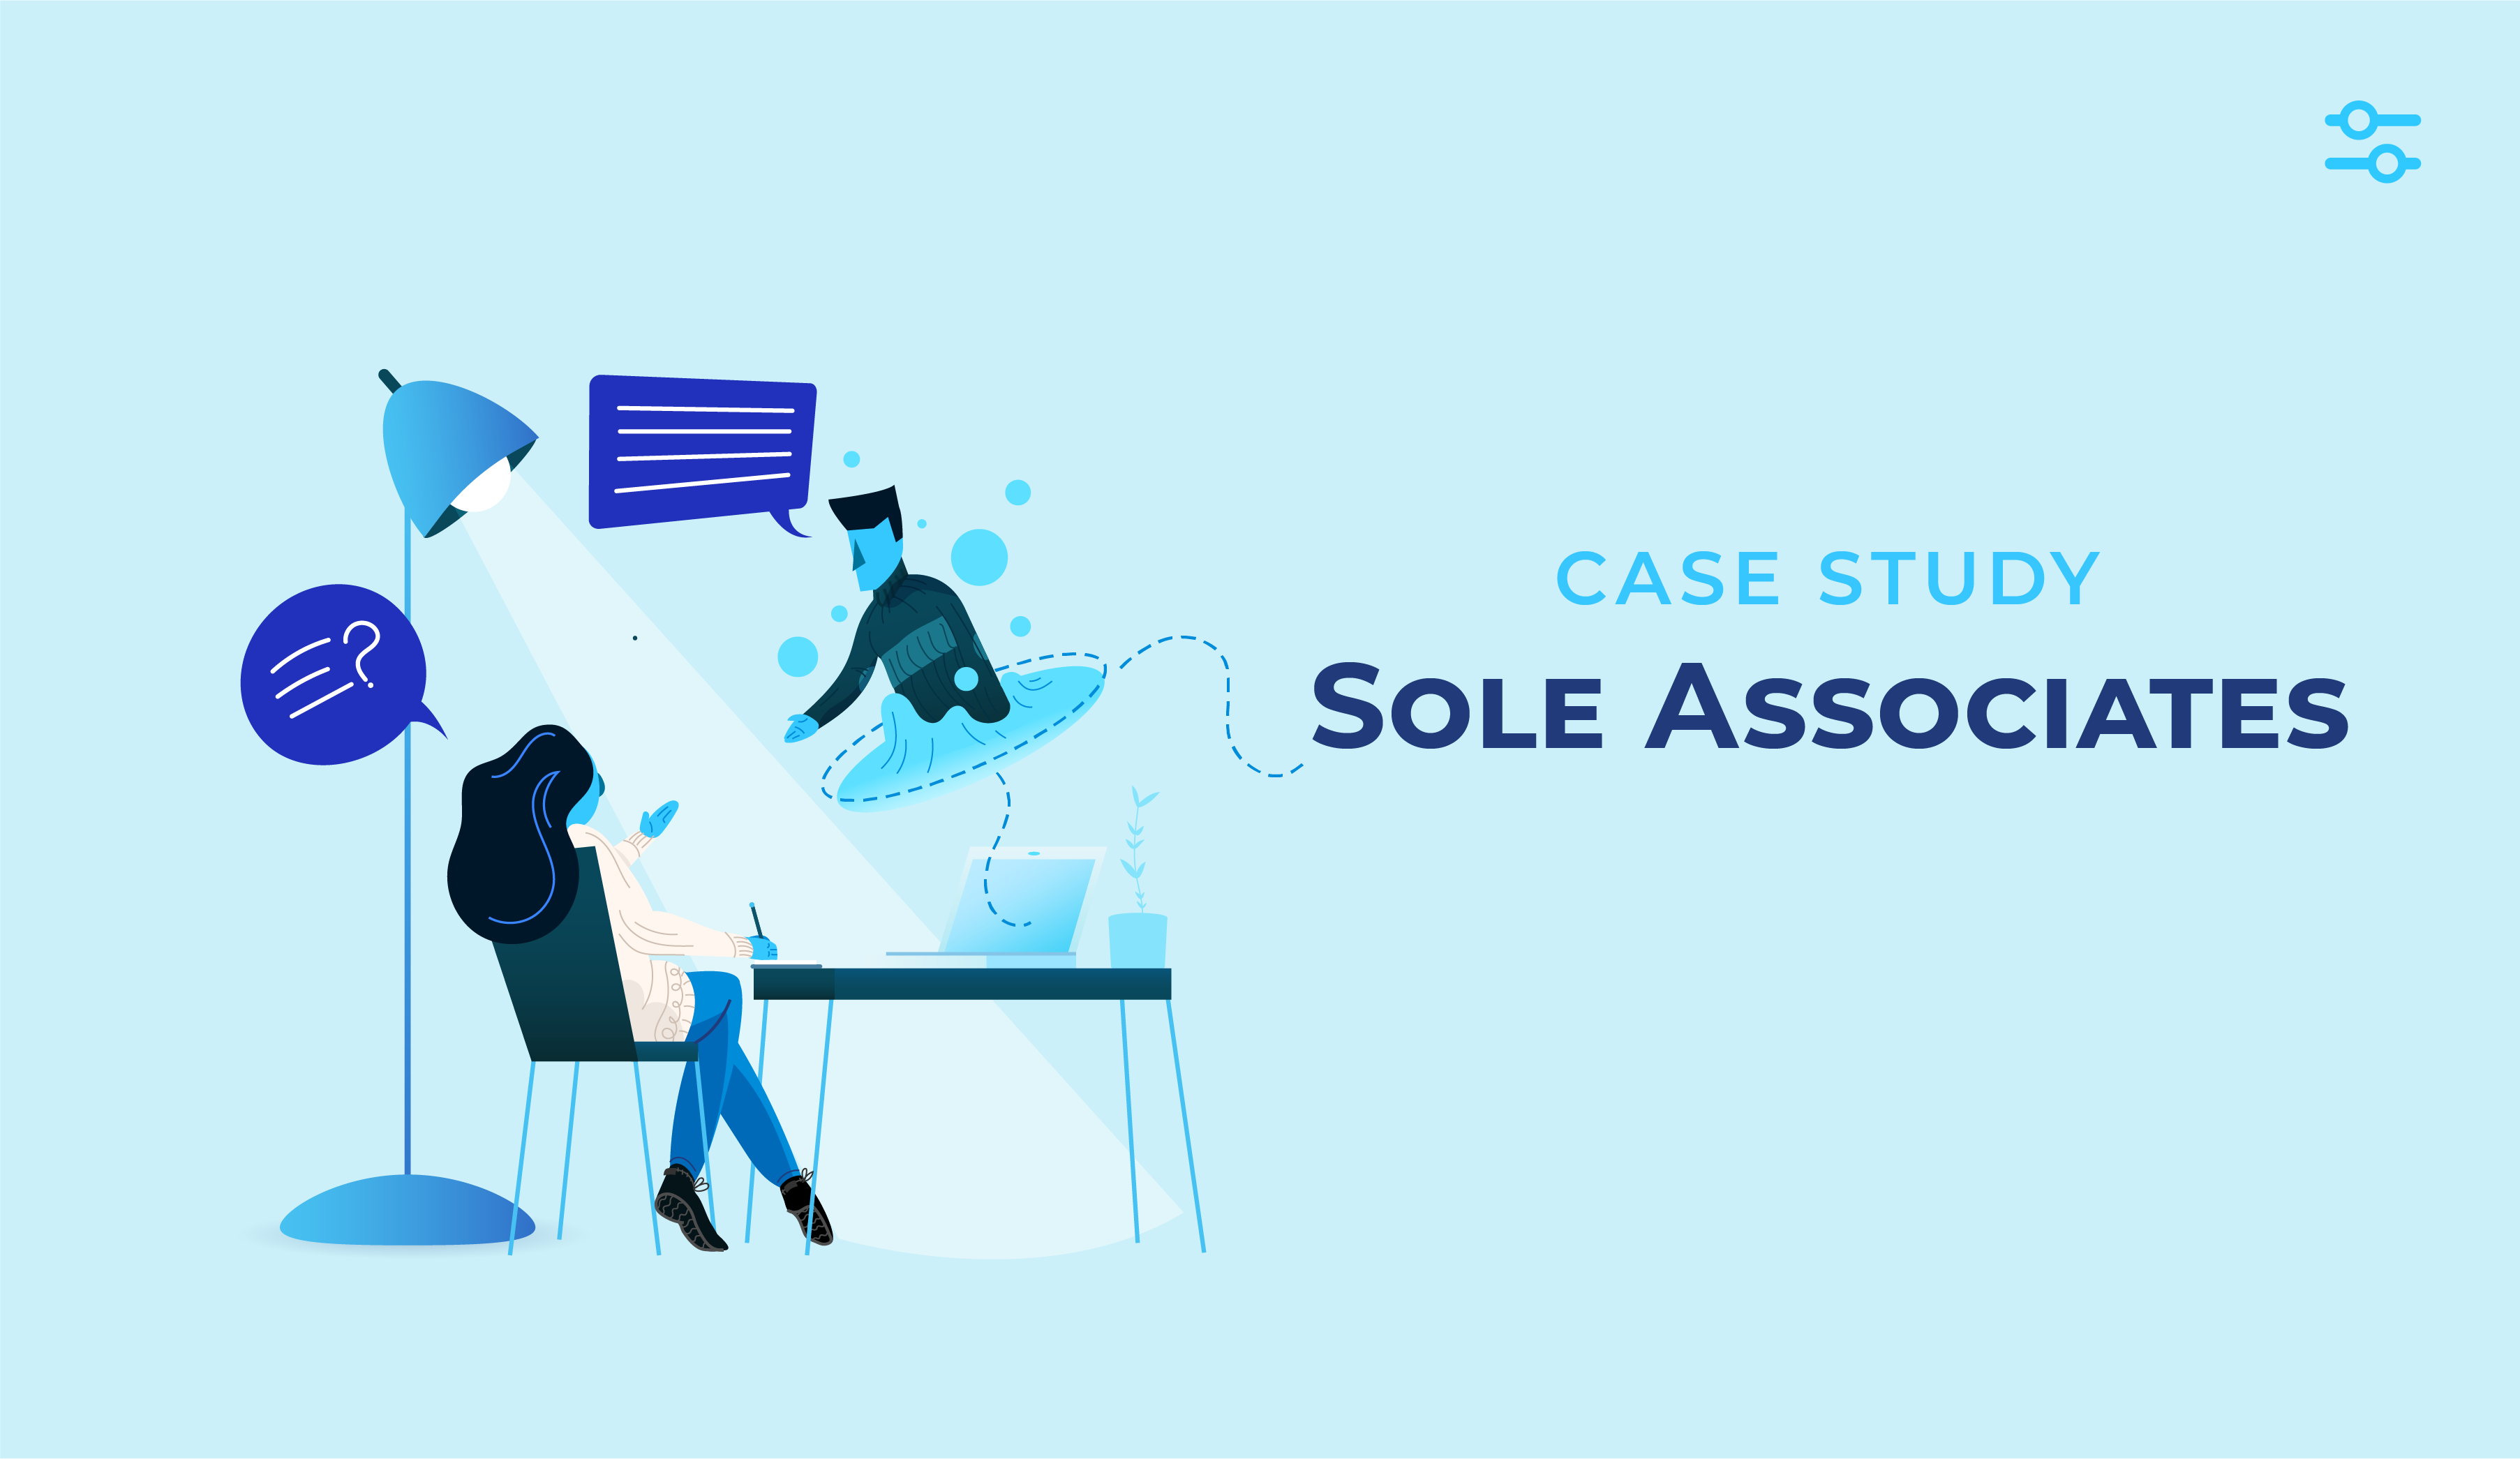 A case study/interview with WhisperClaims user Sole Associates